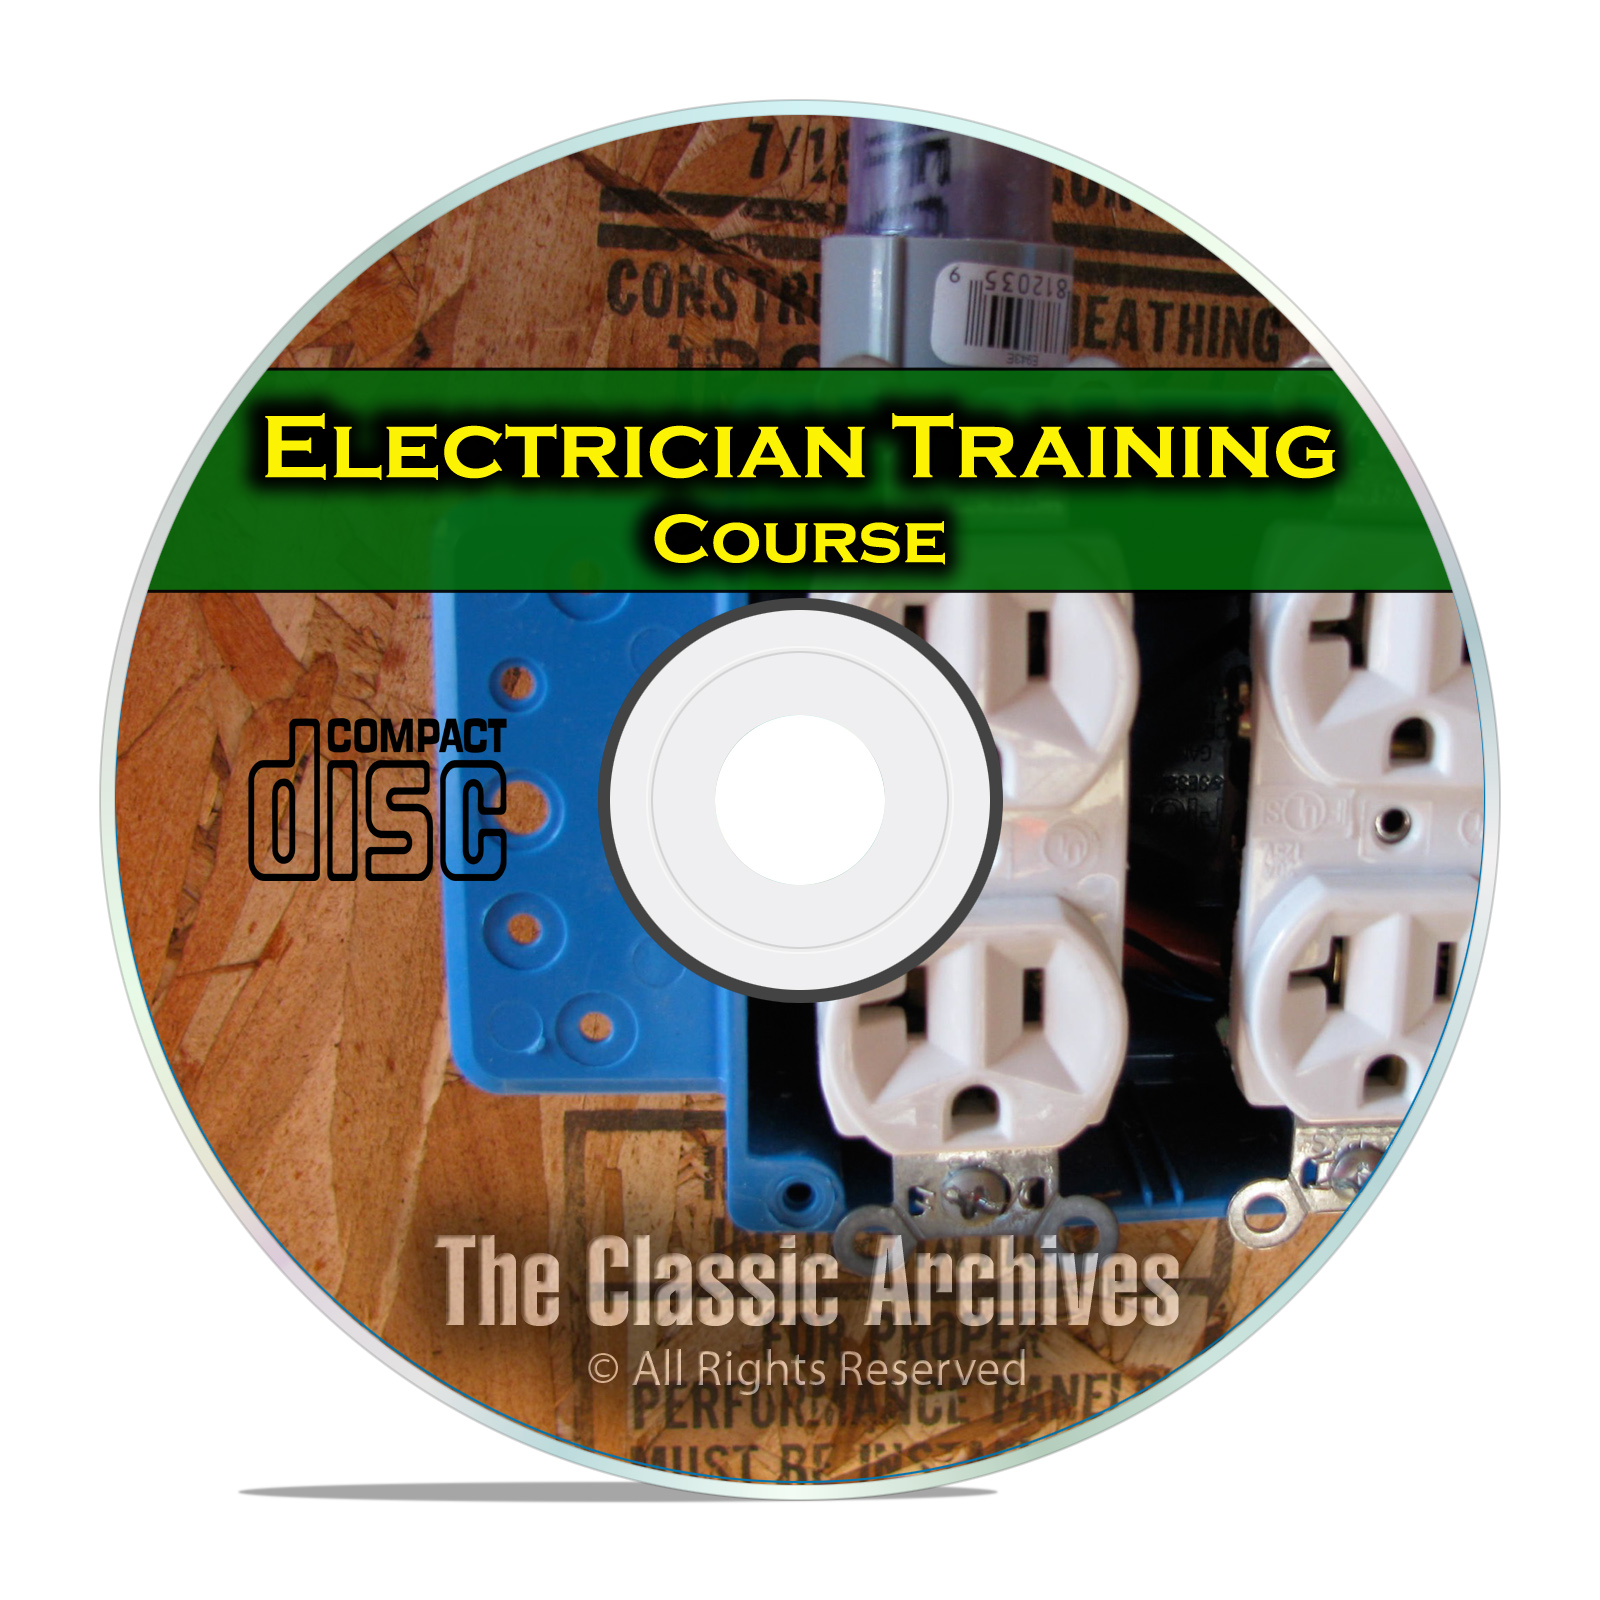 Electrician Journeyman Training Course Class, Electrical How To Manual CD